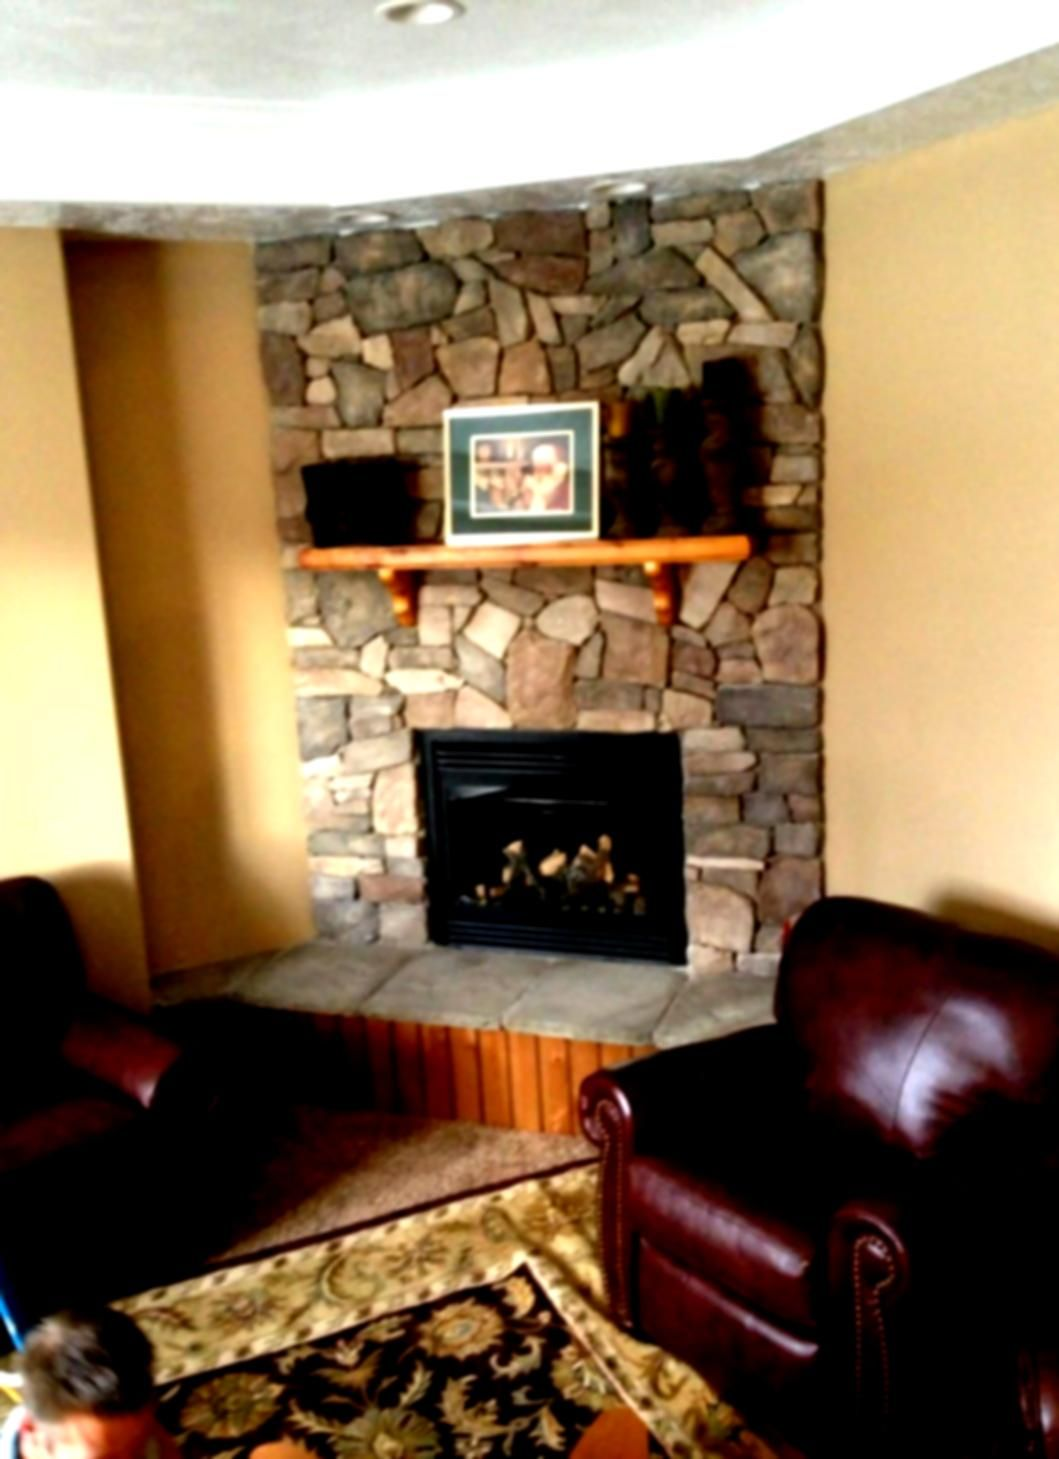 Find Ideas And Inspiration For Tiled Fireplaces To Add To Your Own Home. # Fireplace